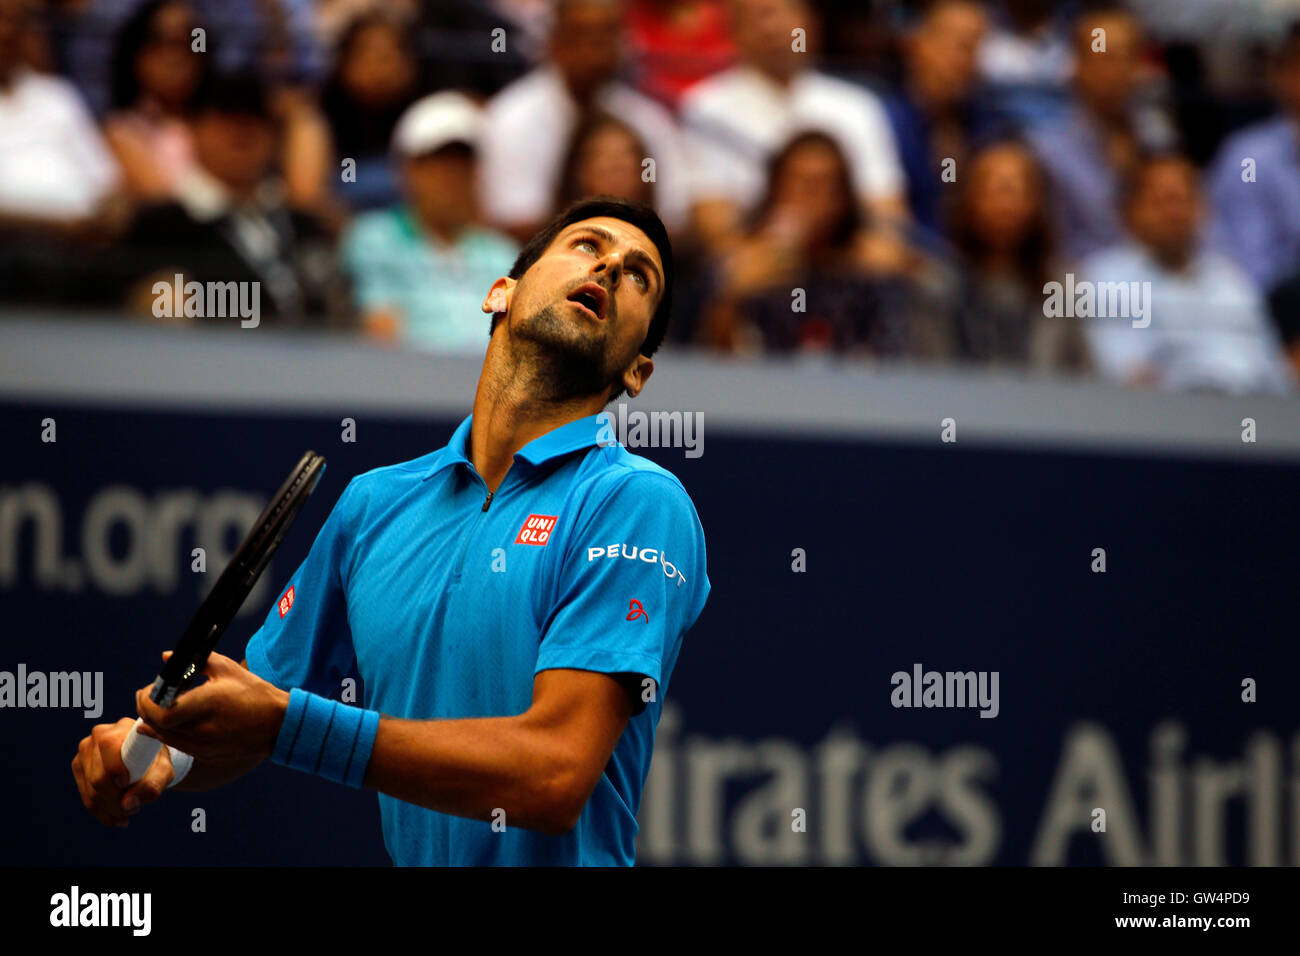 New York, United States. 11th Sep, 2016. Novak Djokovic sets up an overhead during the United States Open Tennis - Stock Image